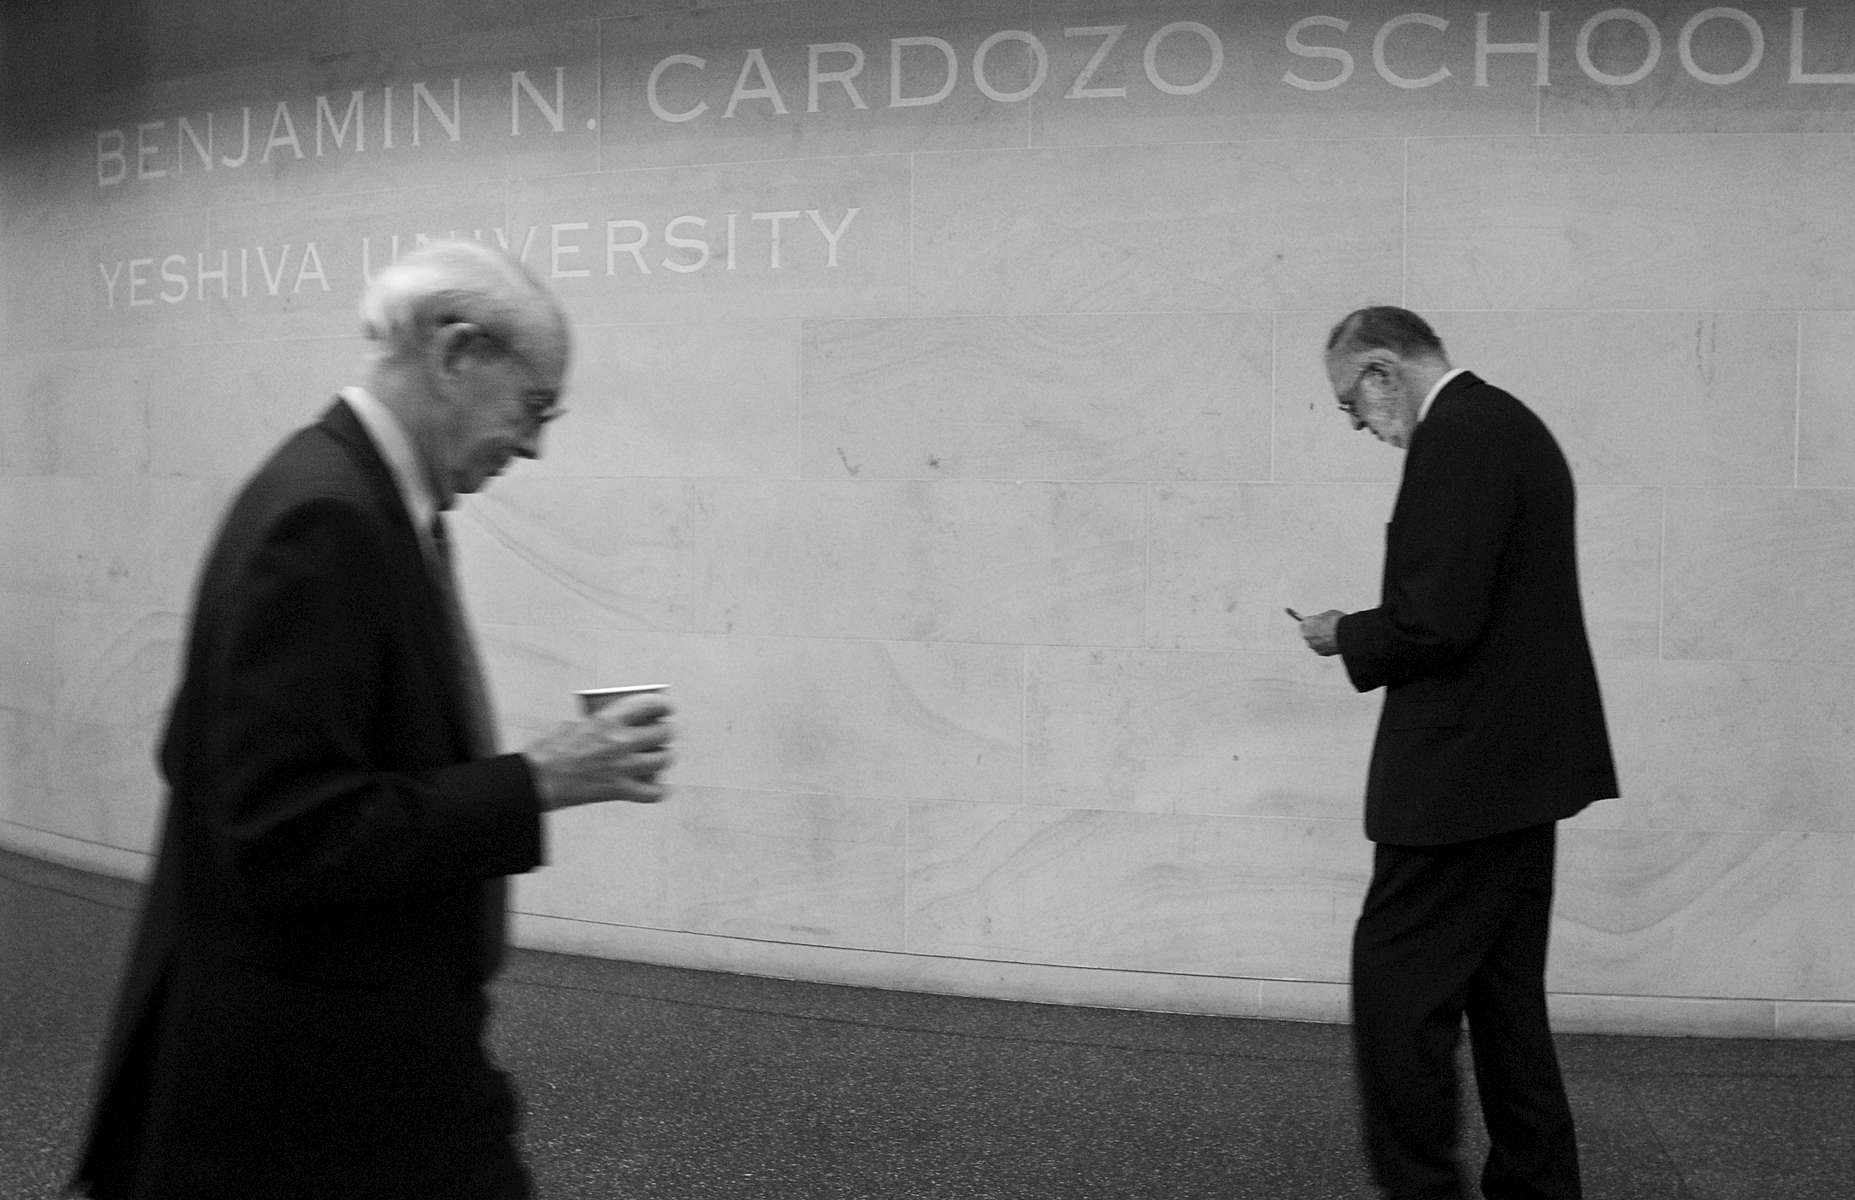 U.S. Supreme Court Justice Stephen Breyer, left, at Cardozo Law School – October, 2010